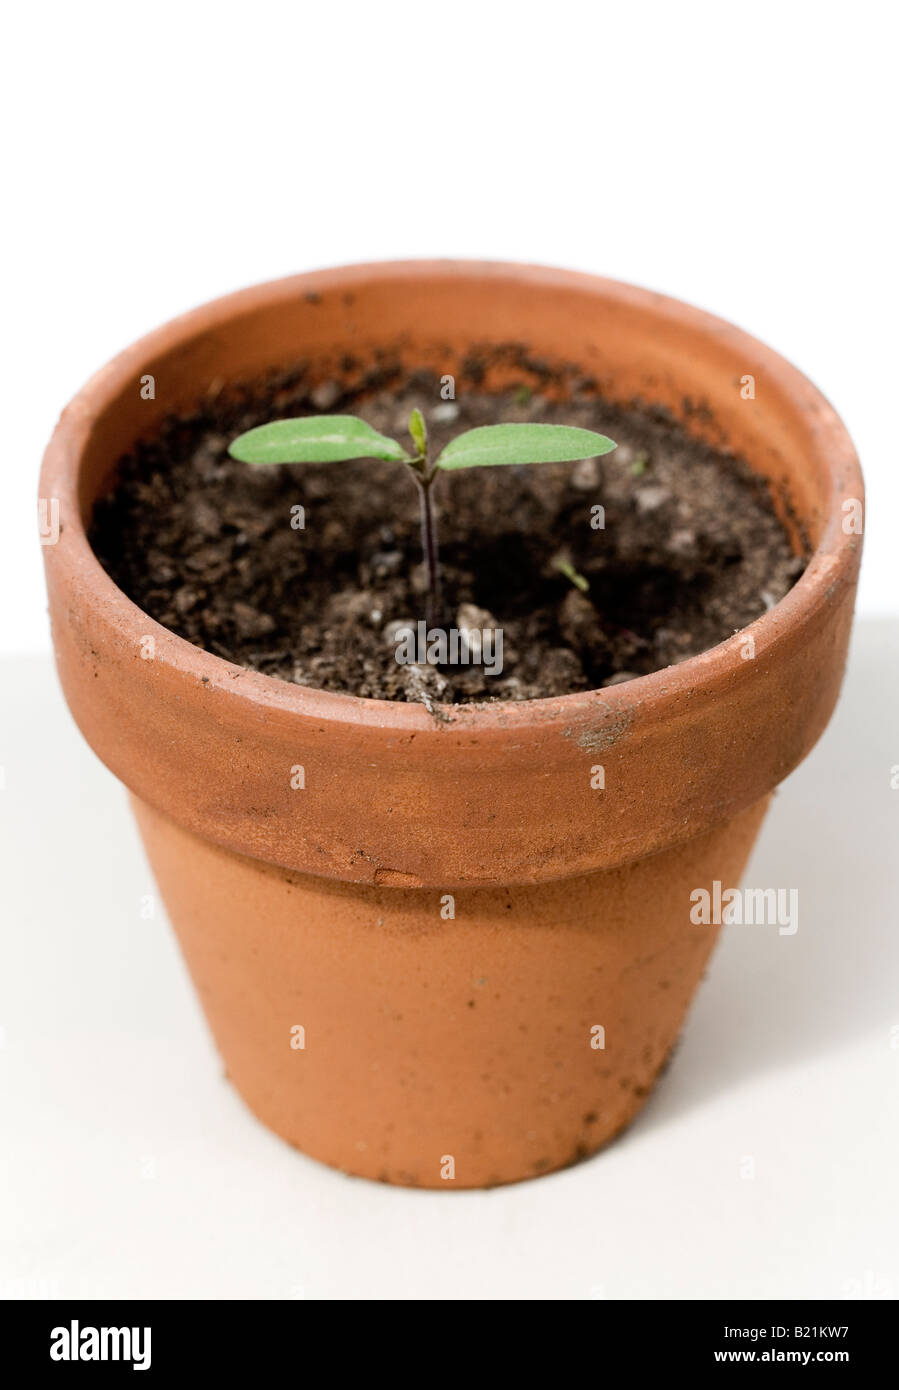 Tomato seedling in a terra-cotta pot - Stock Image